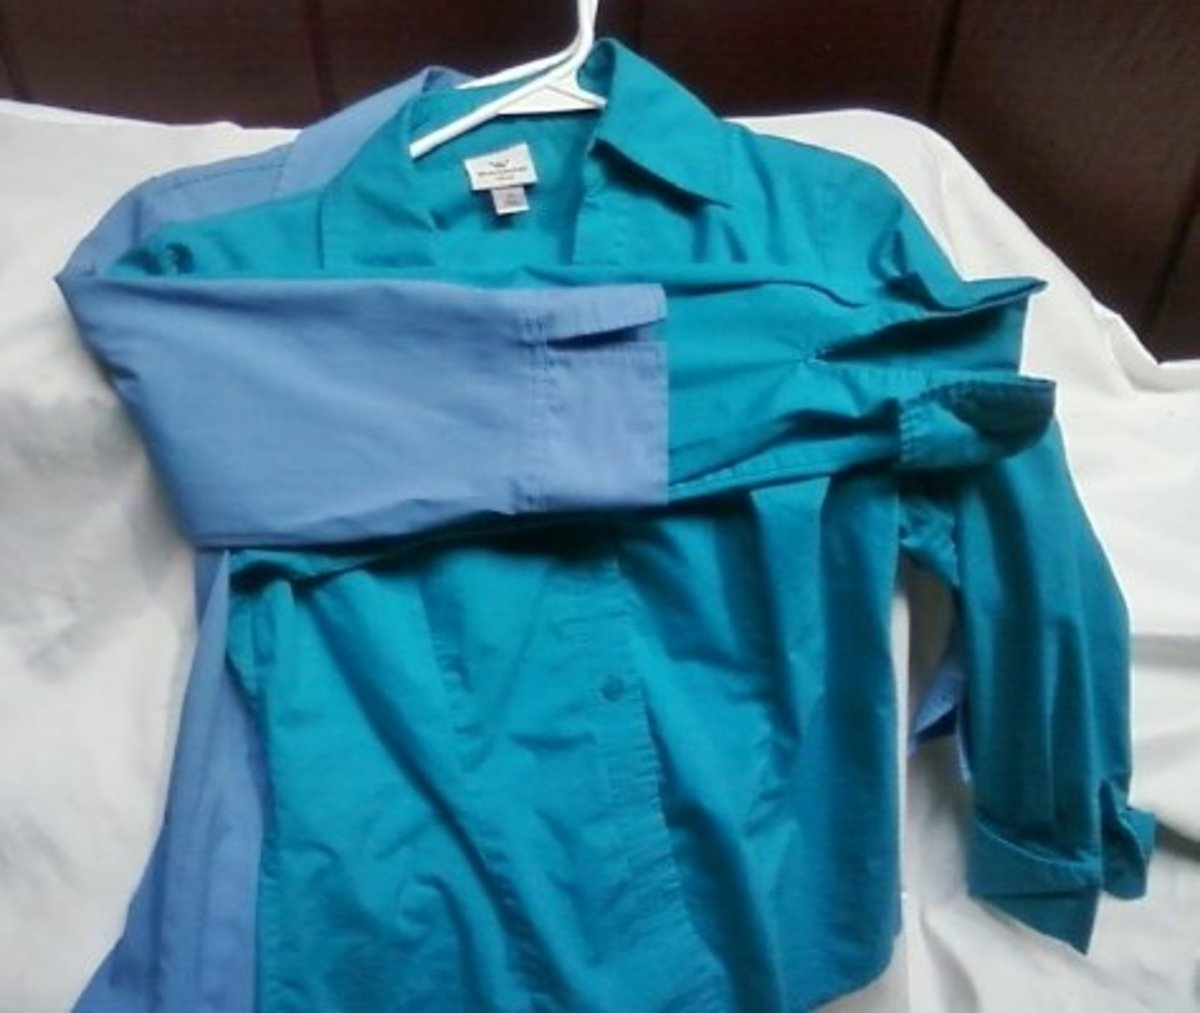 The two blouses, one with a full-length sleeve to be altered, and the model 3/4 sleeve.